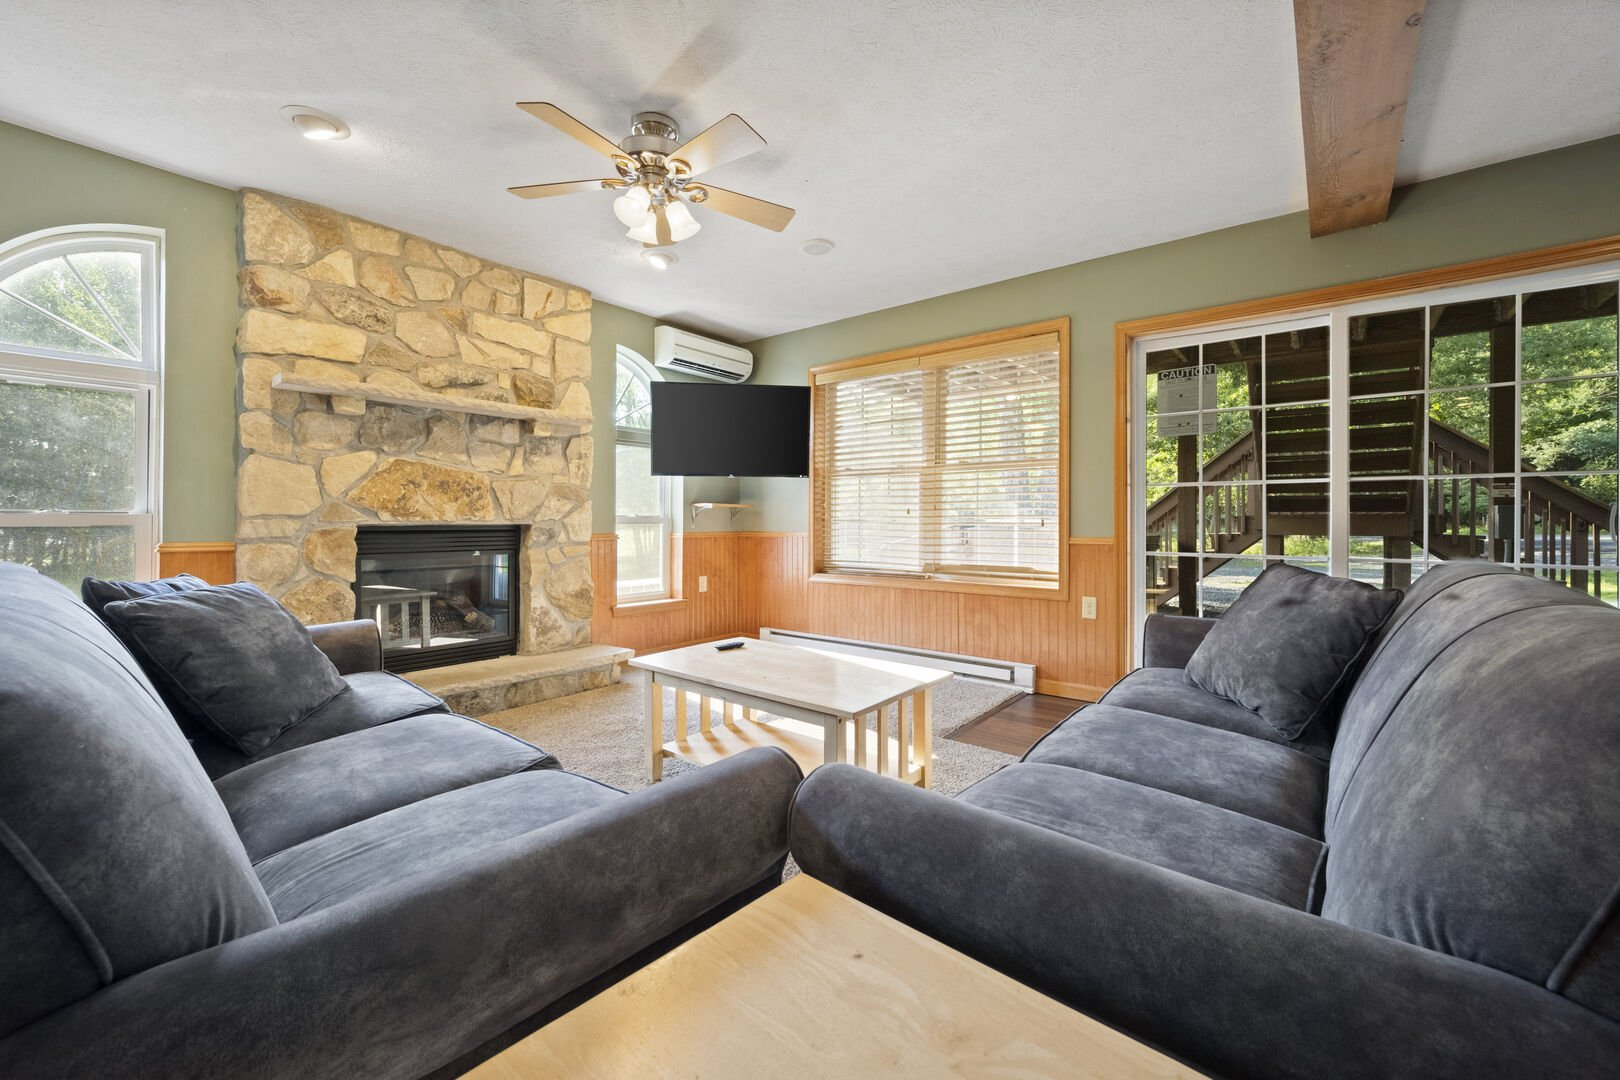 Twin couches next to fireplace